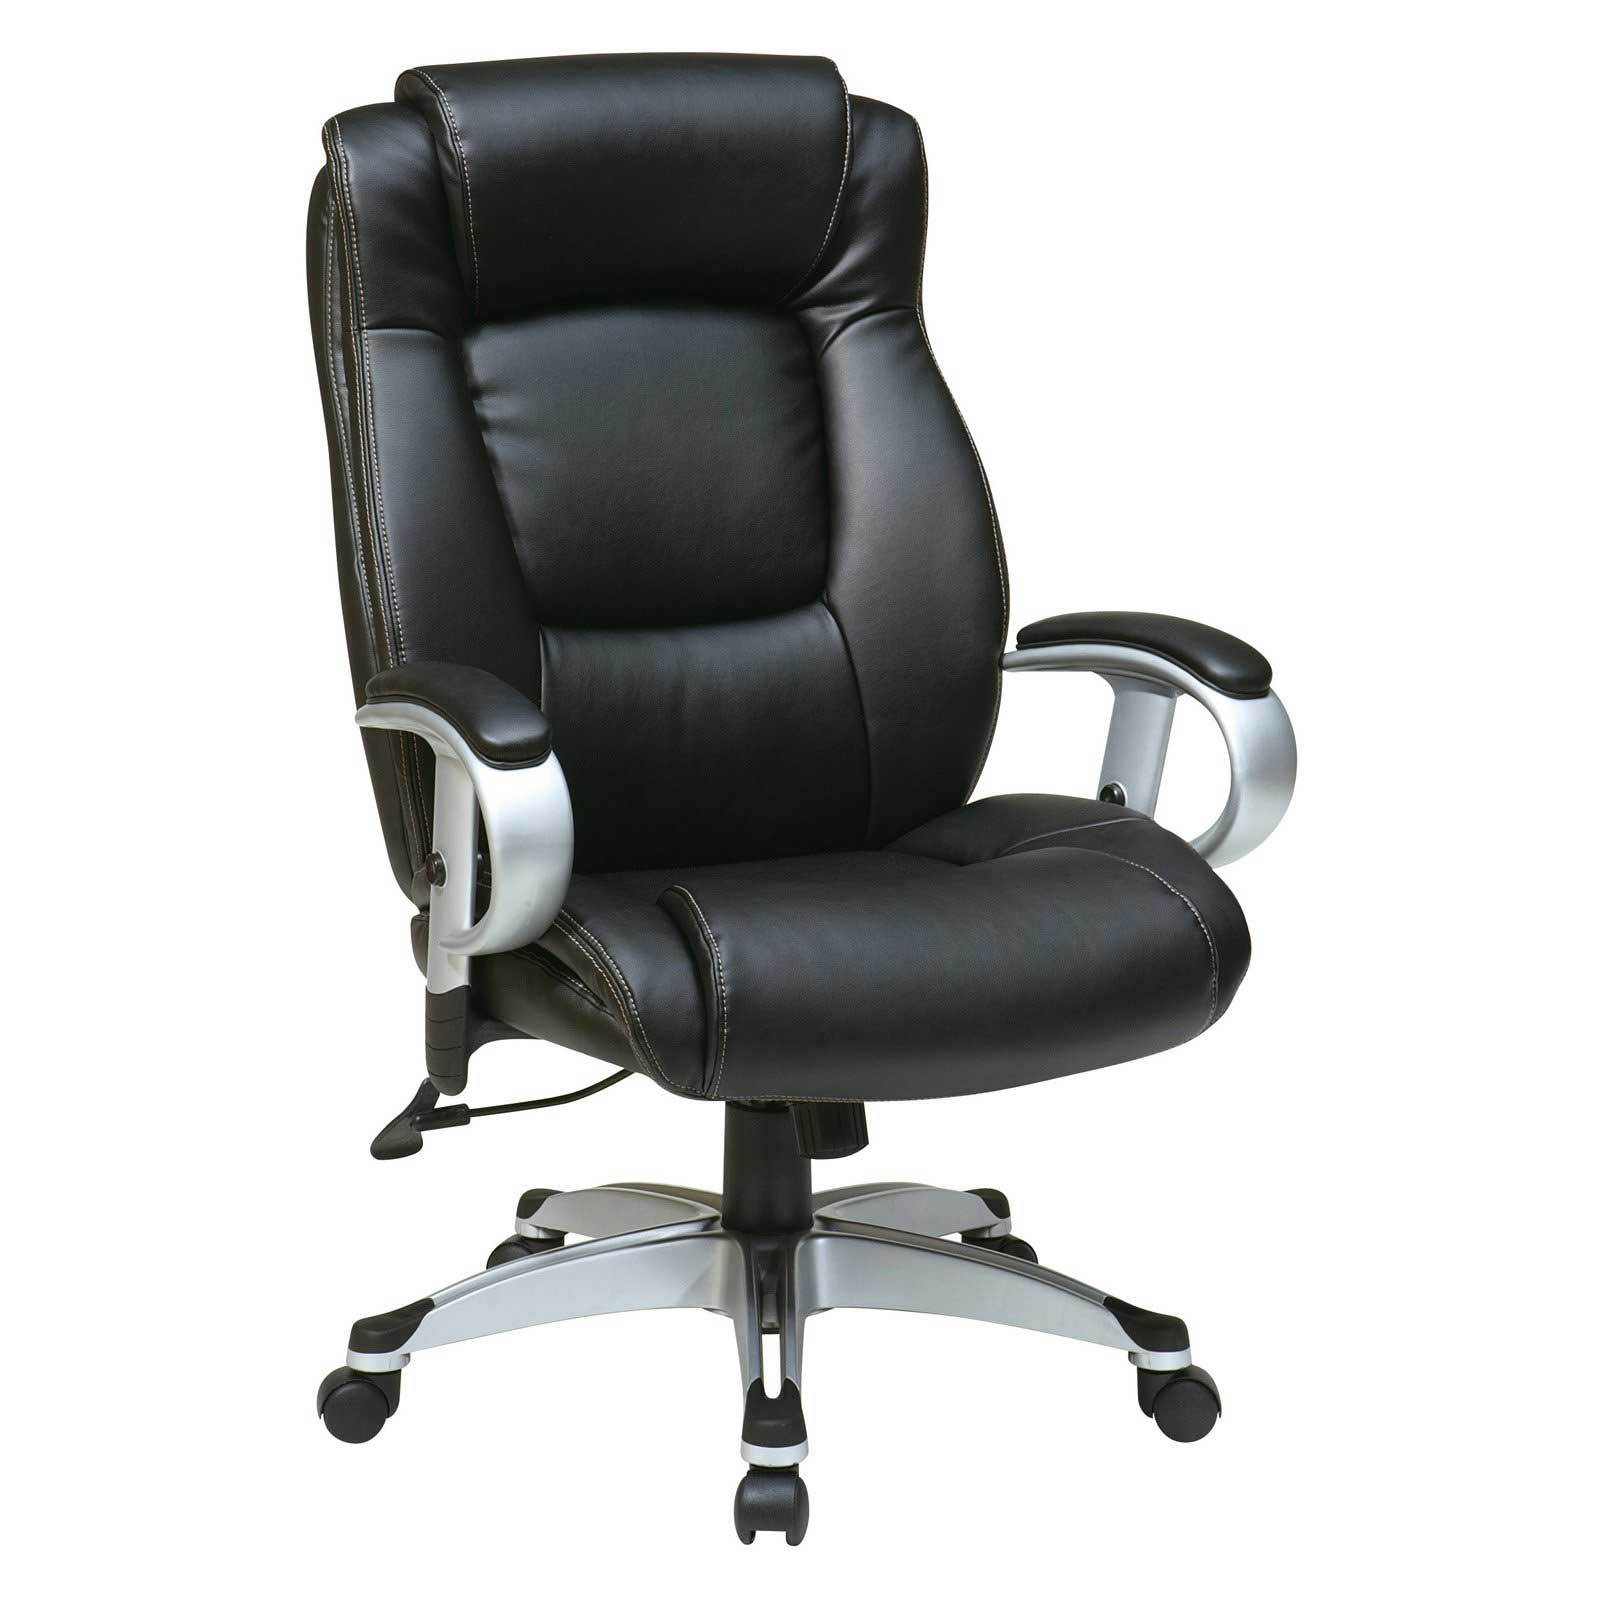 desk chair adjustable swivel hunting with gun rest height chairs for home office